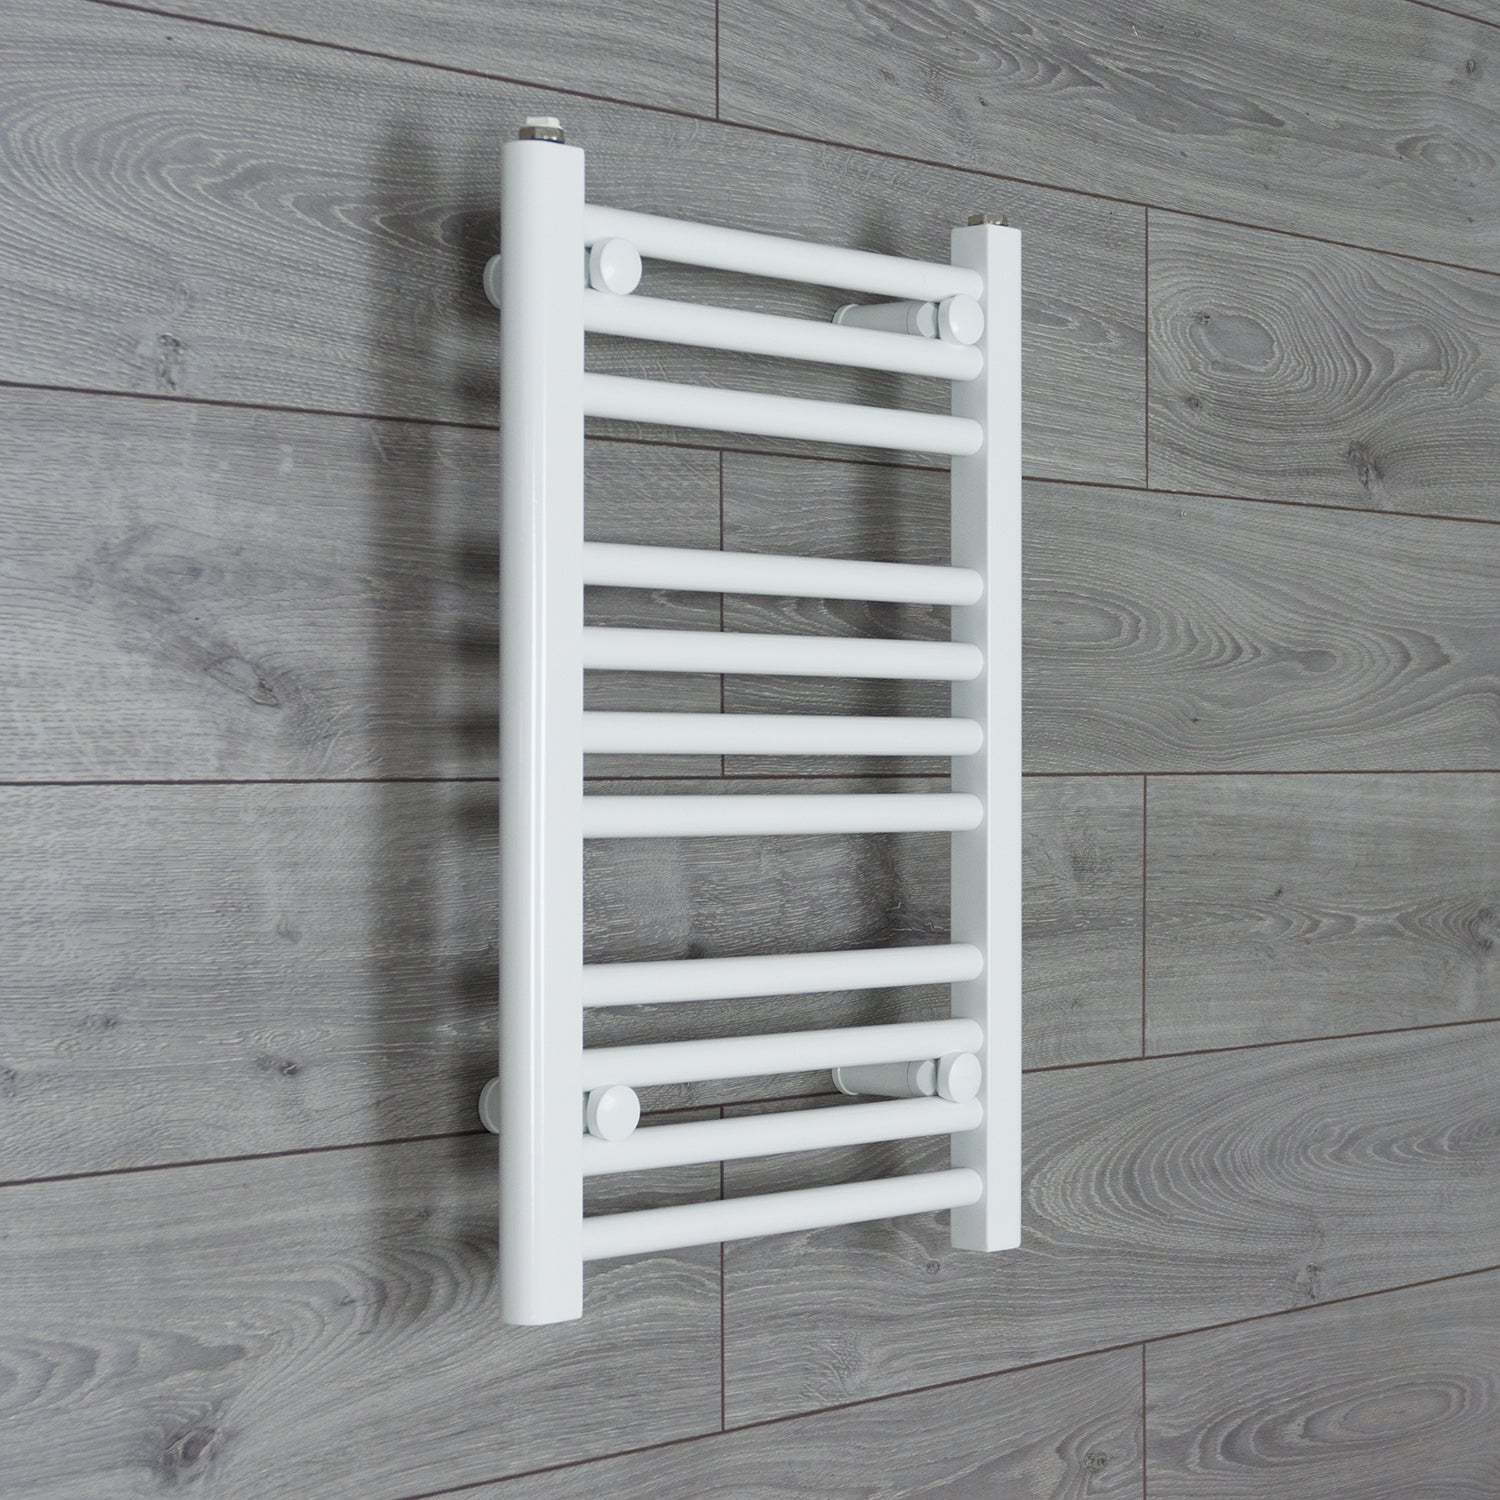 400mm Wide 600mm High White Towel Rail Radiator